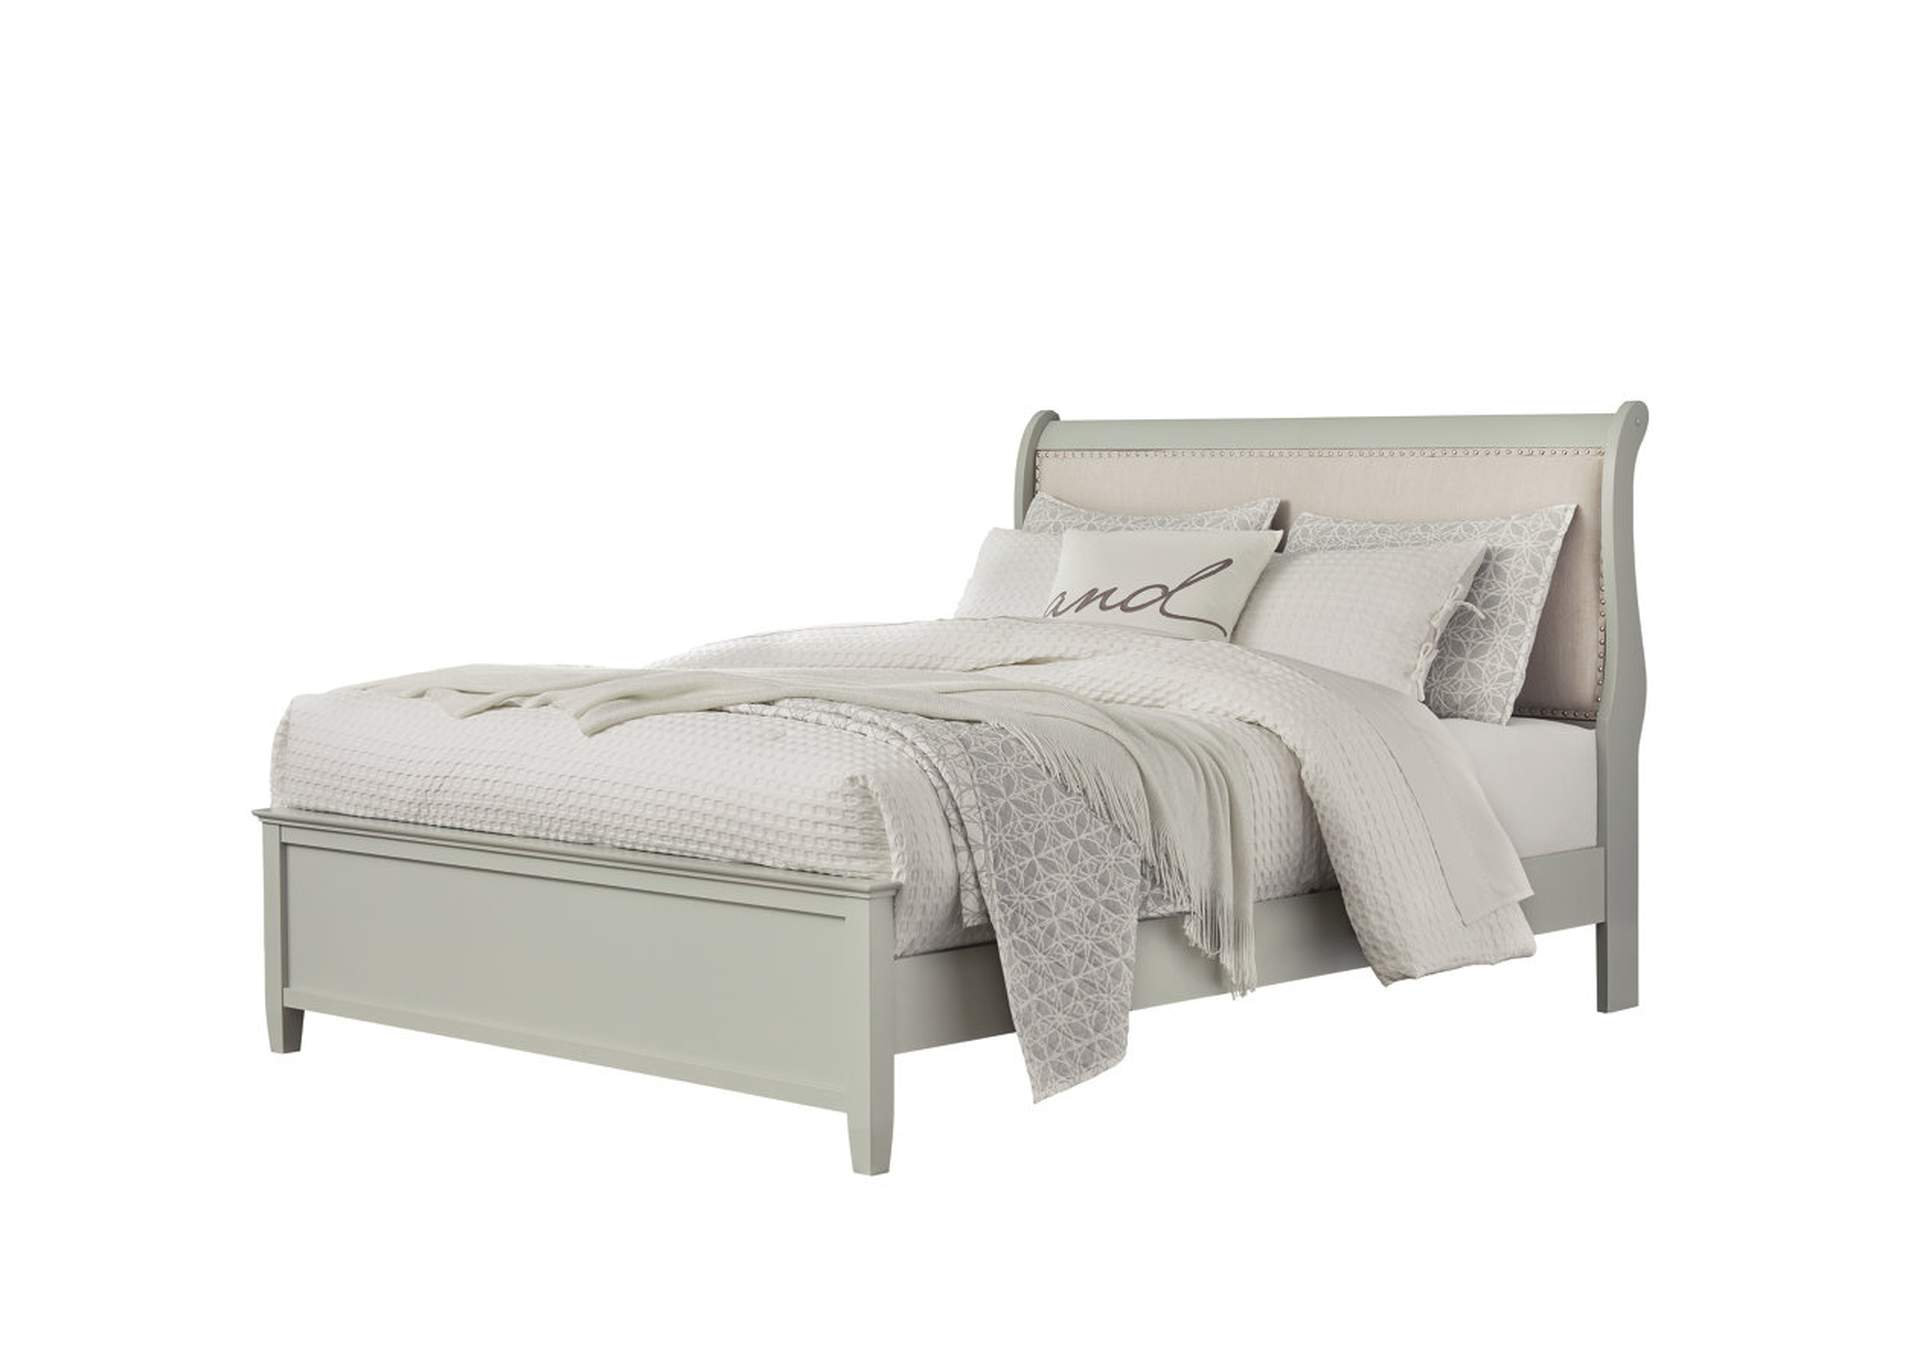 Jorstad Gray Upholstery Sleigh California King Bed,Signature Design By Ashley